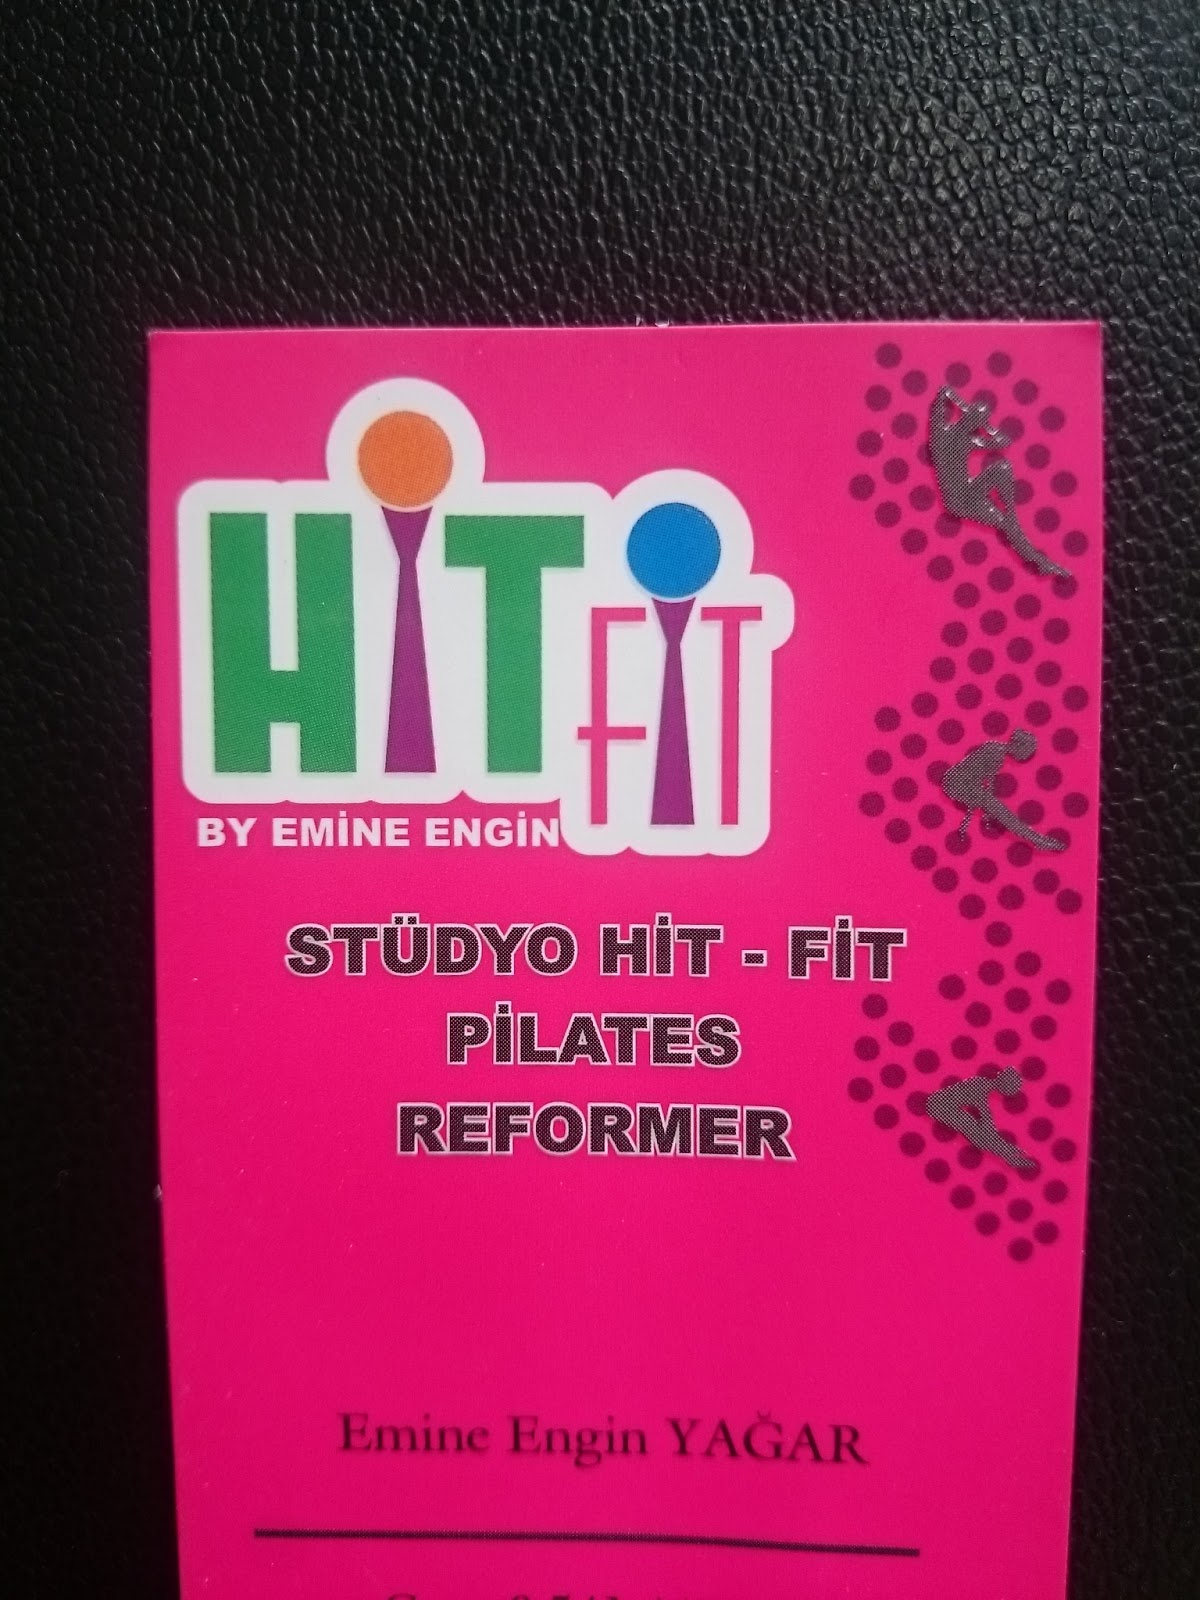 Hit-Fit Pilates & Reformer - photo